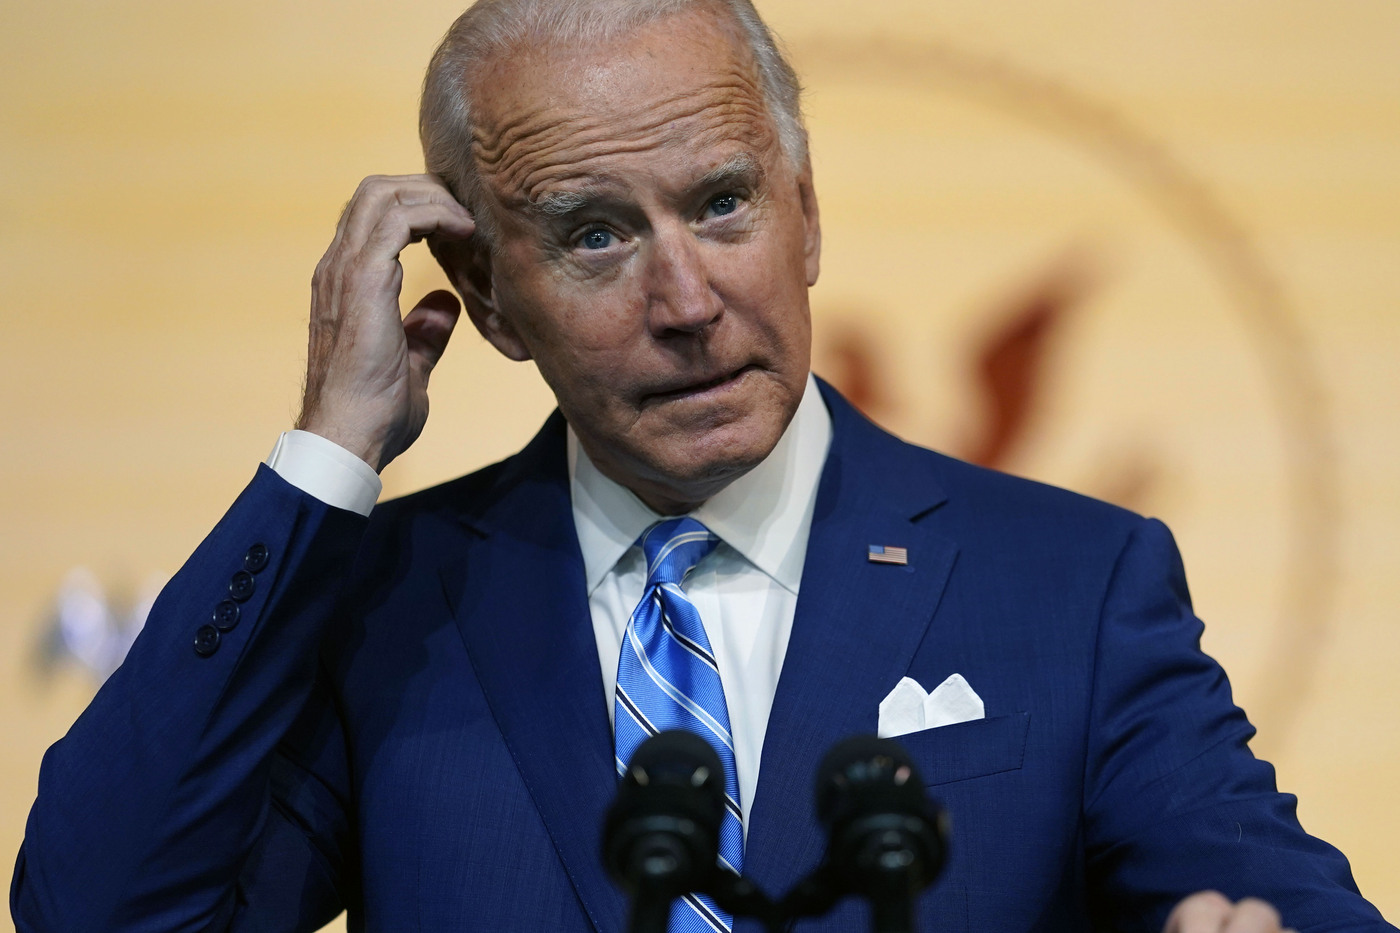 Il Presidente eletto Joe Biden parla dal Queen Theater di Wilmington